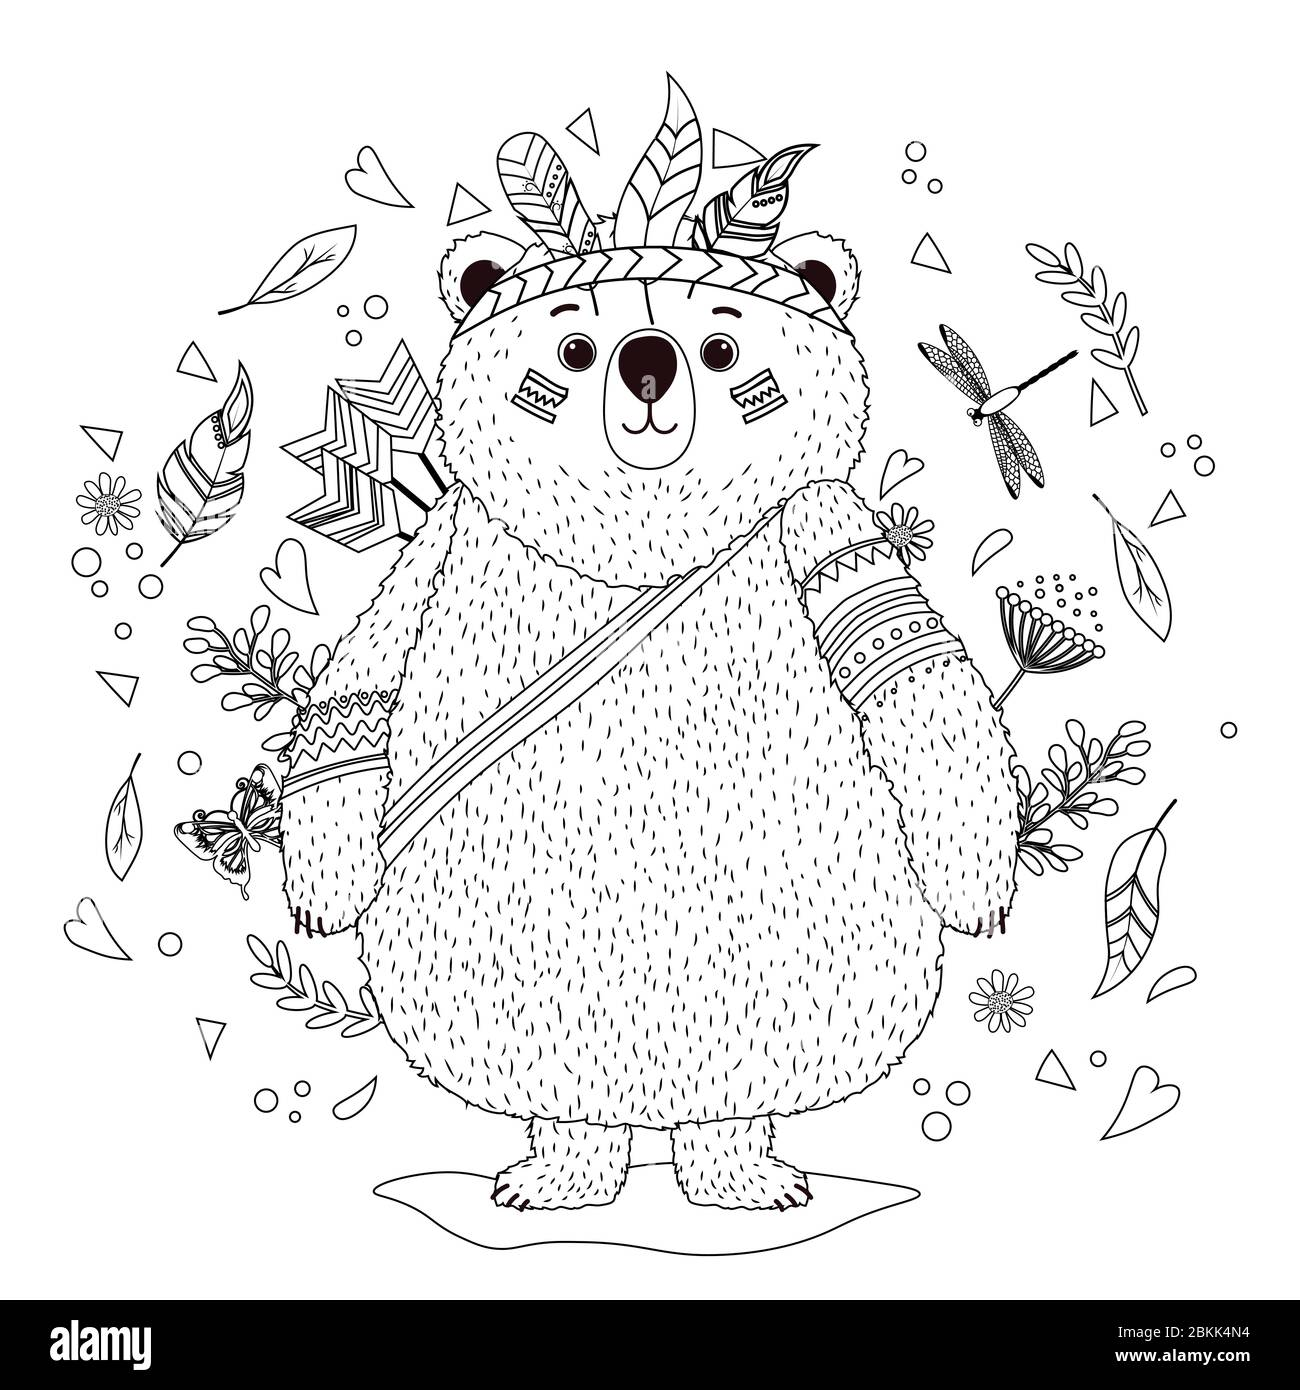 - A Bear Cub In An Indian War Hat With Feathers. Coloring Book For